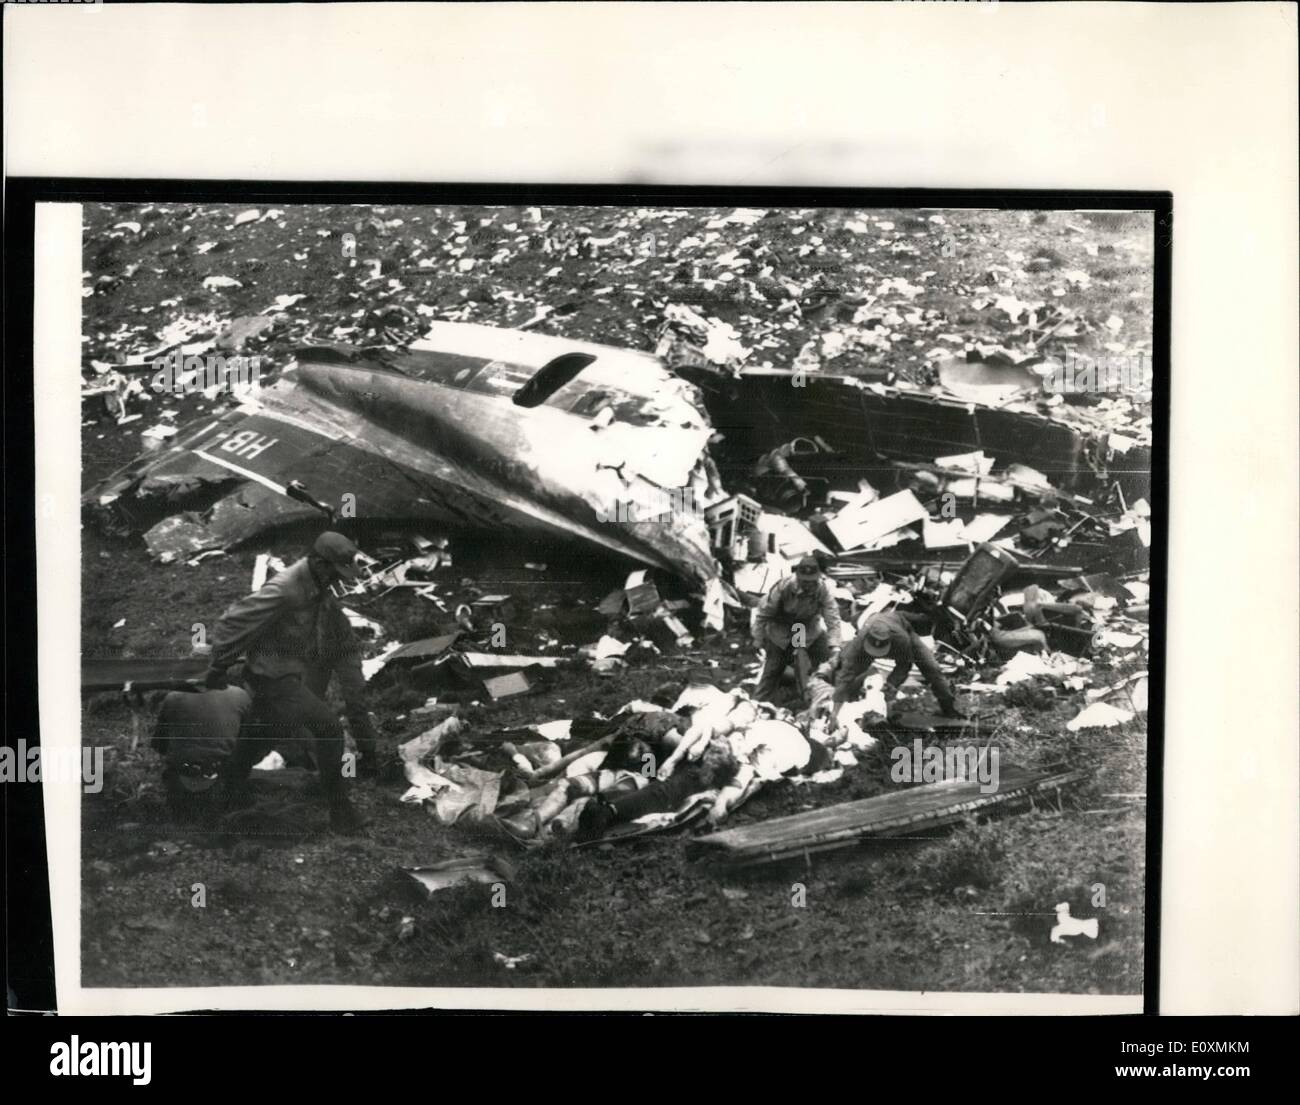 Apr. 04, 1967 - 123 die in airliner crash in Cyprus: A Britannia airliner, hit by lightning, plunged into a hill near Nicosia, Cyprus today, killing 123 people. Globe Air, Swiss owners of the Britannia said that all 118 passengers and five crew members had been killed. Four persons, including an air hostess survived. Photo shows the scene as Cyprus National guard remove victims from the wreckage of the plane after the crash. - Stock Image